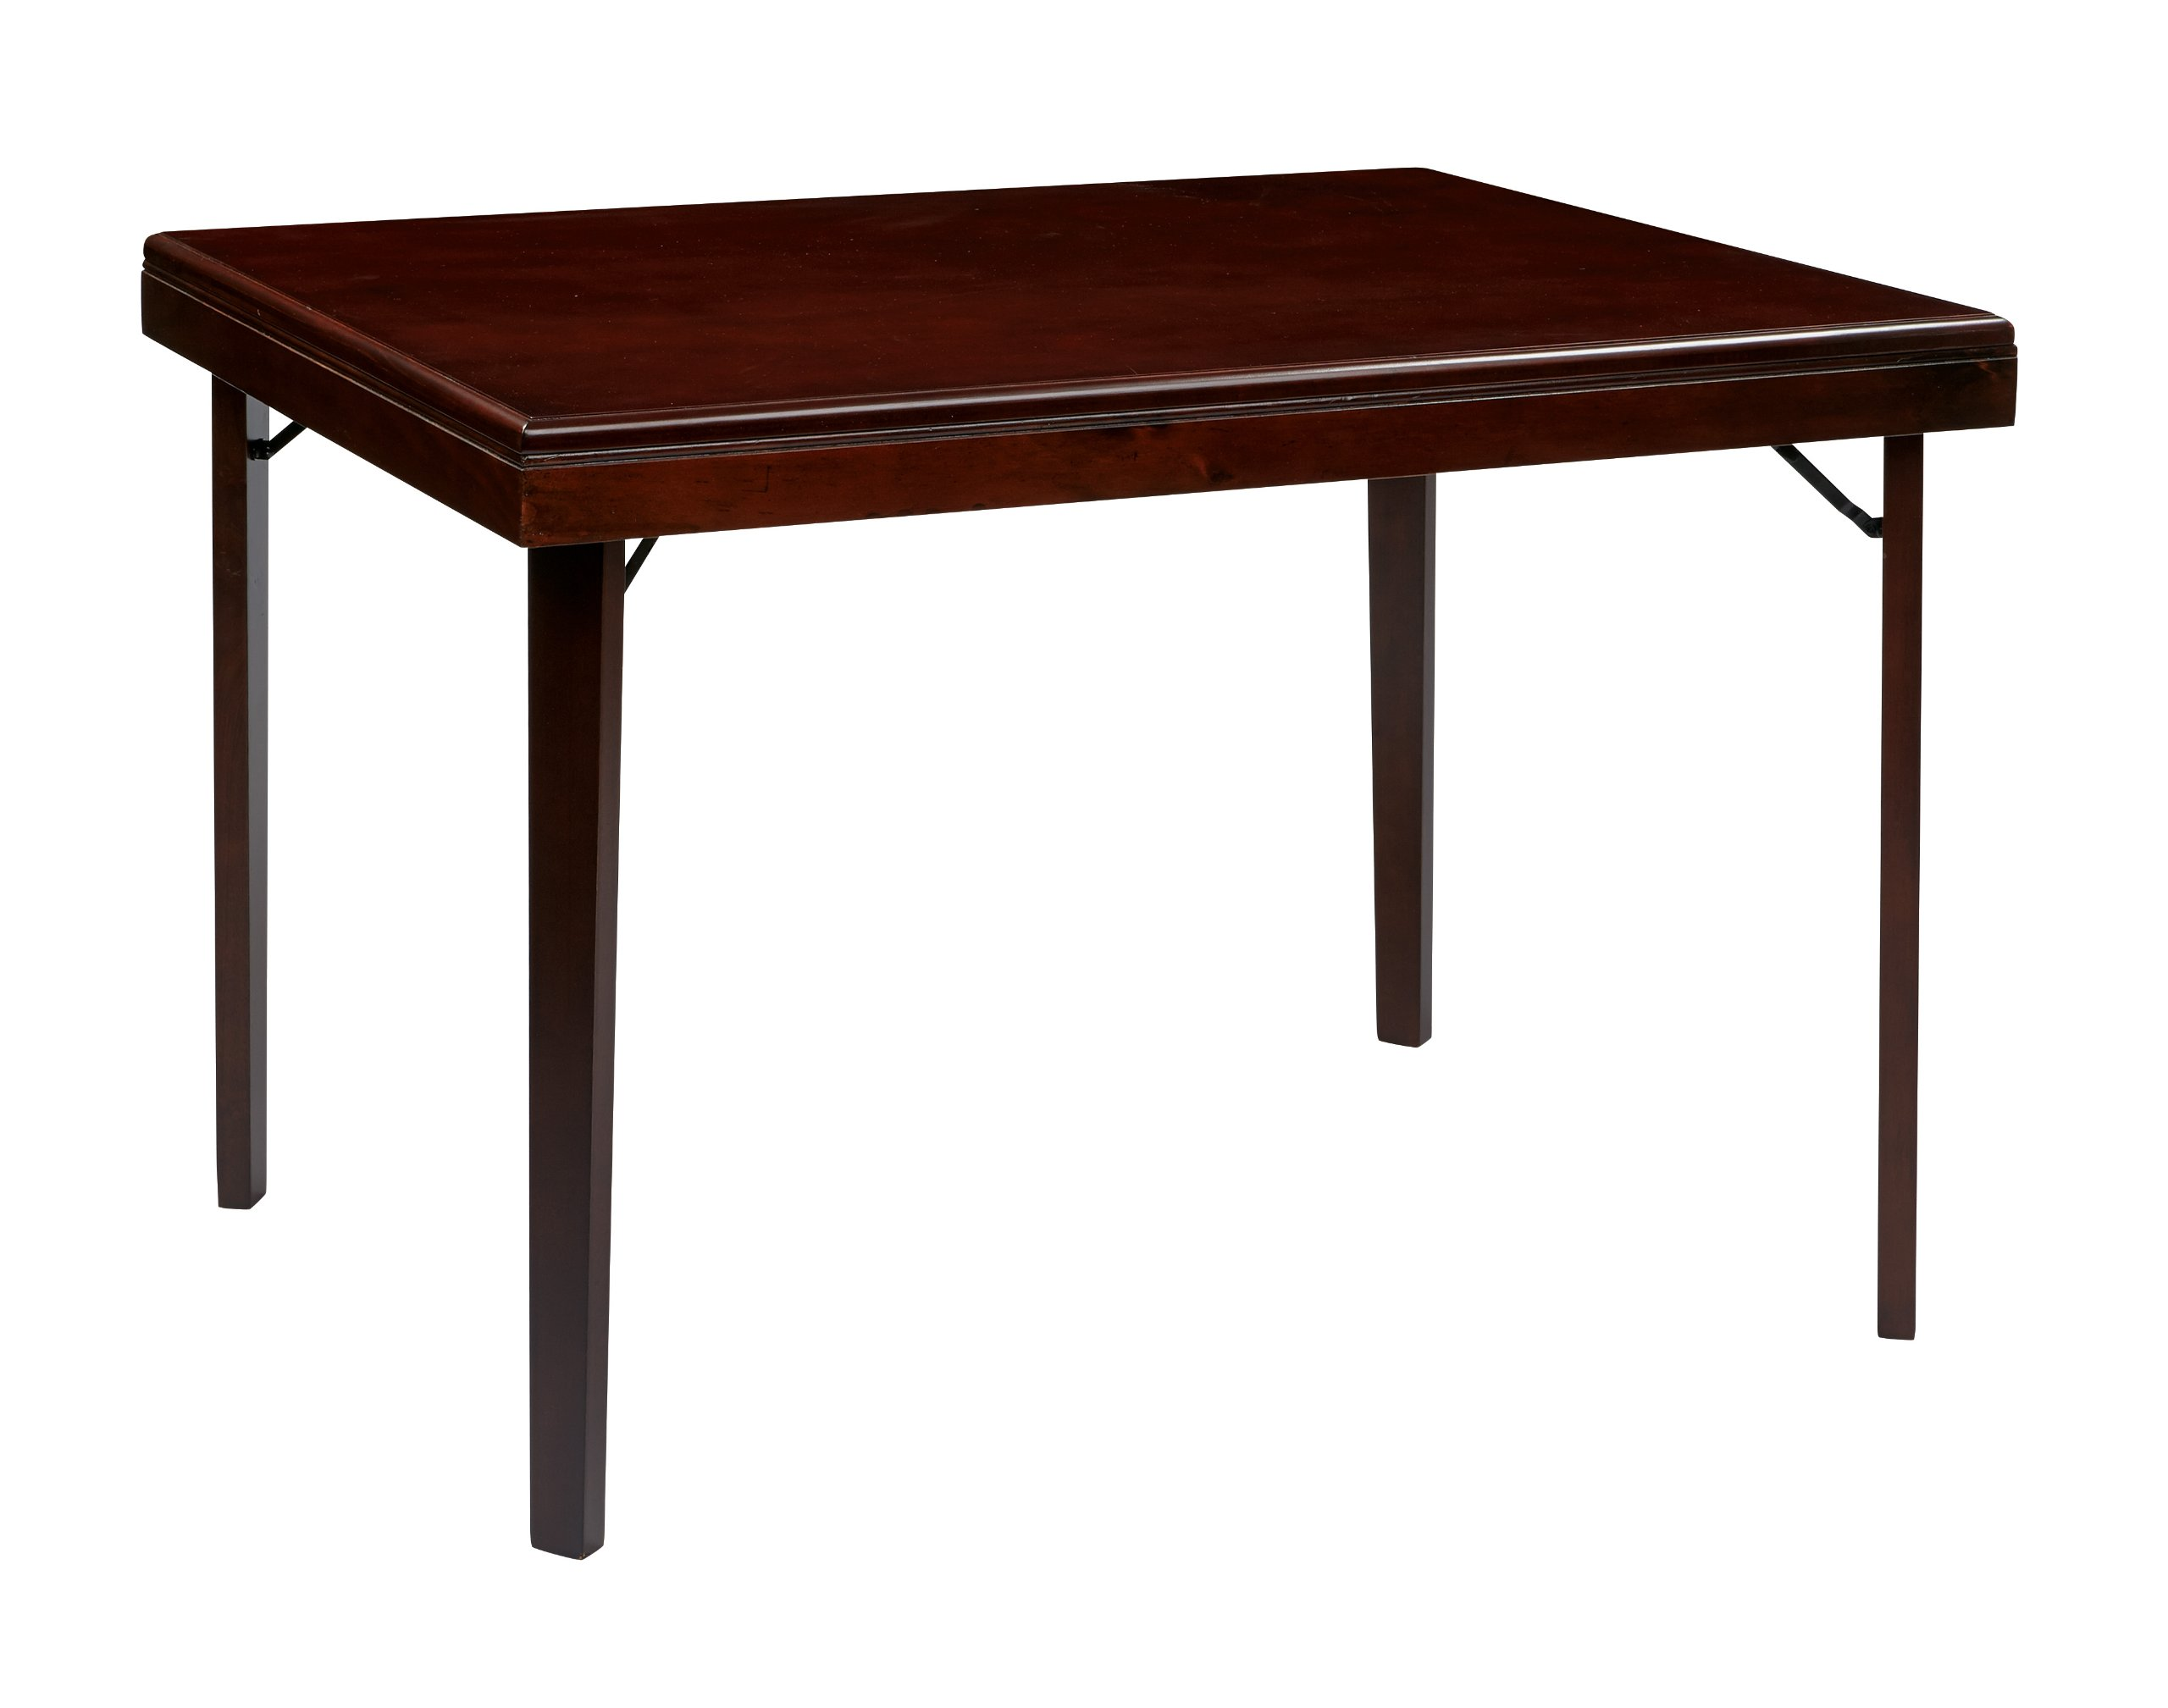 Office Star Hacienda Wood and Veneer Folding Table, Espresso